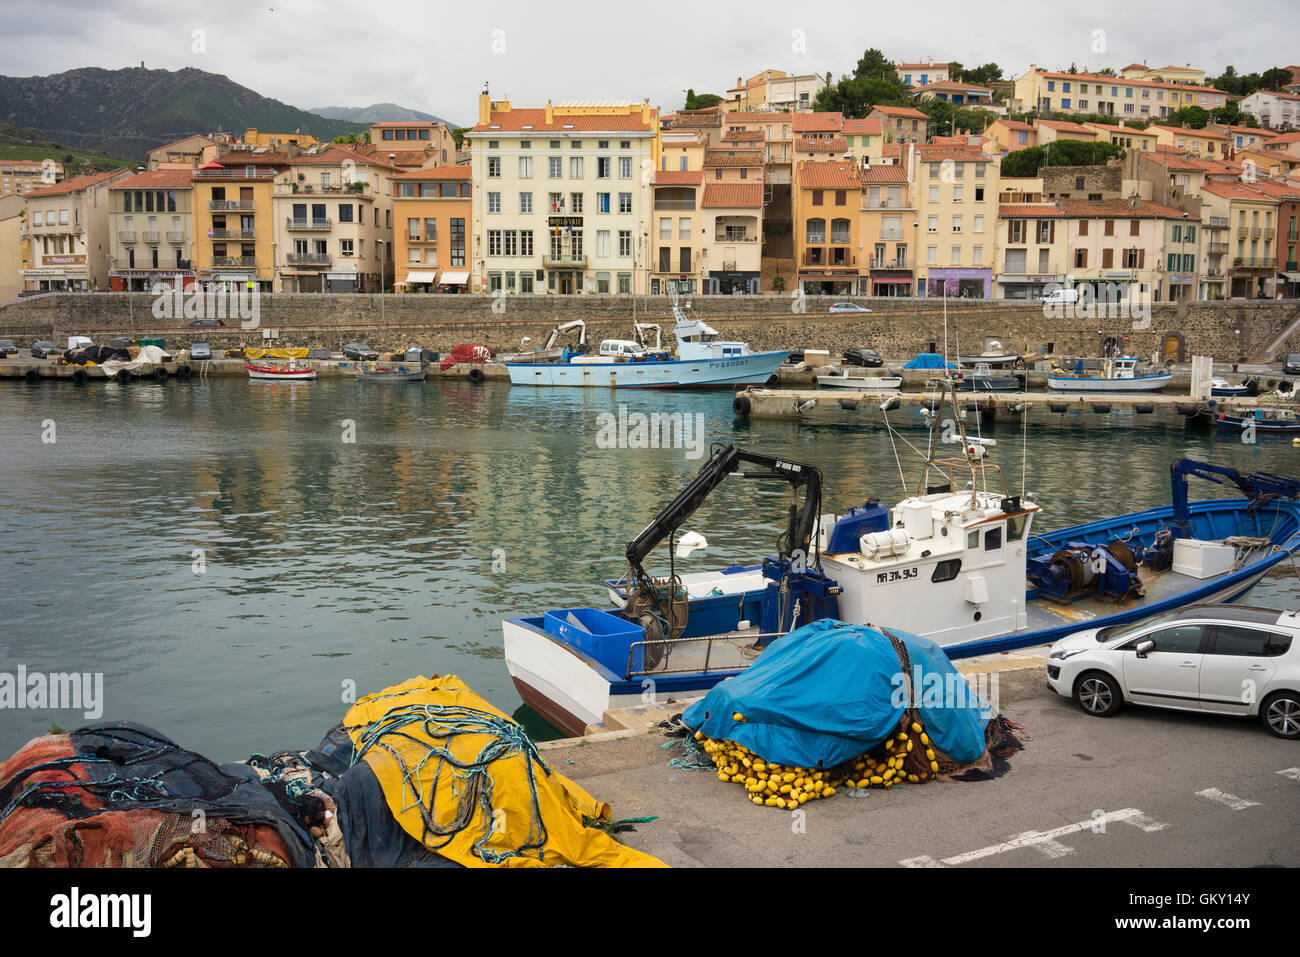 PortVendres In The PyreneesOrientales France Stock Photo - Location port vendres